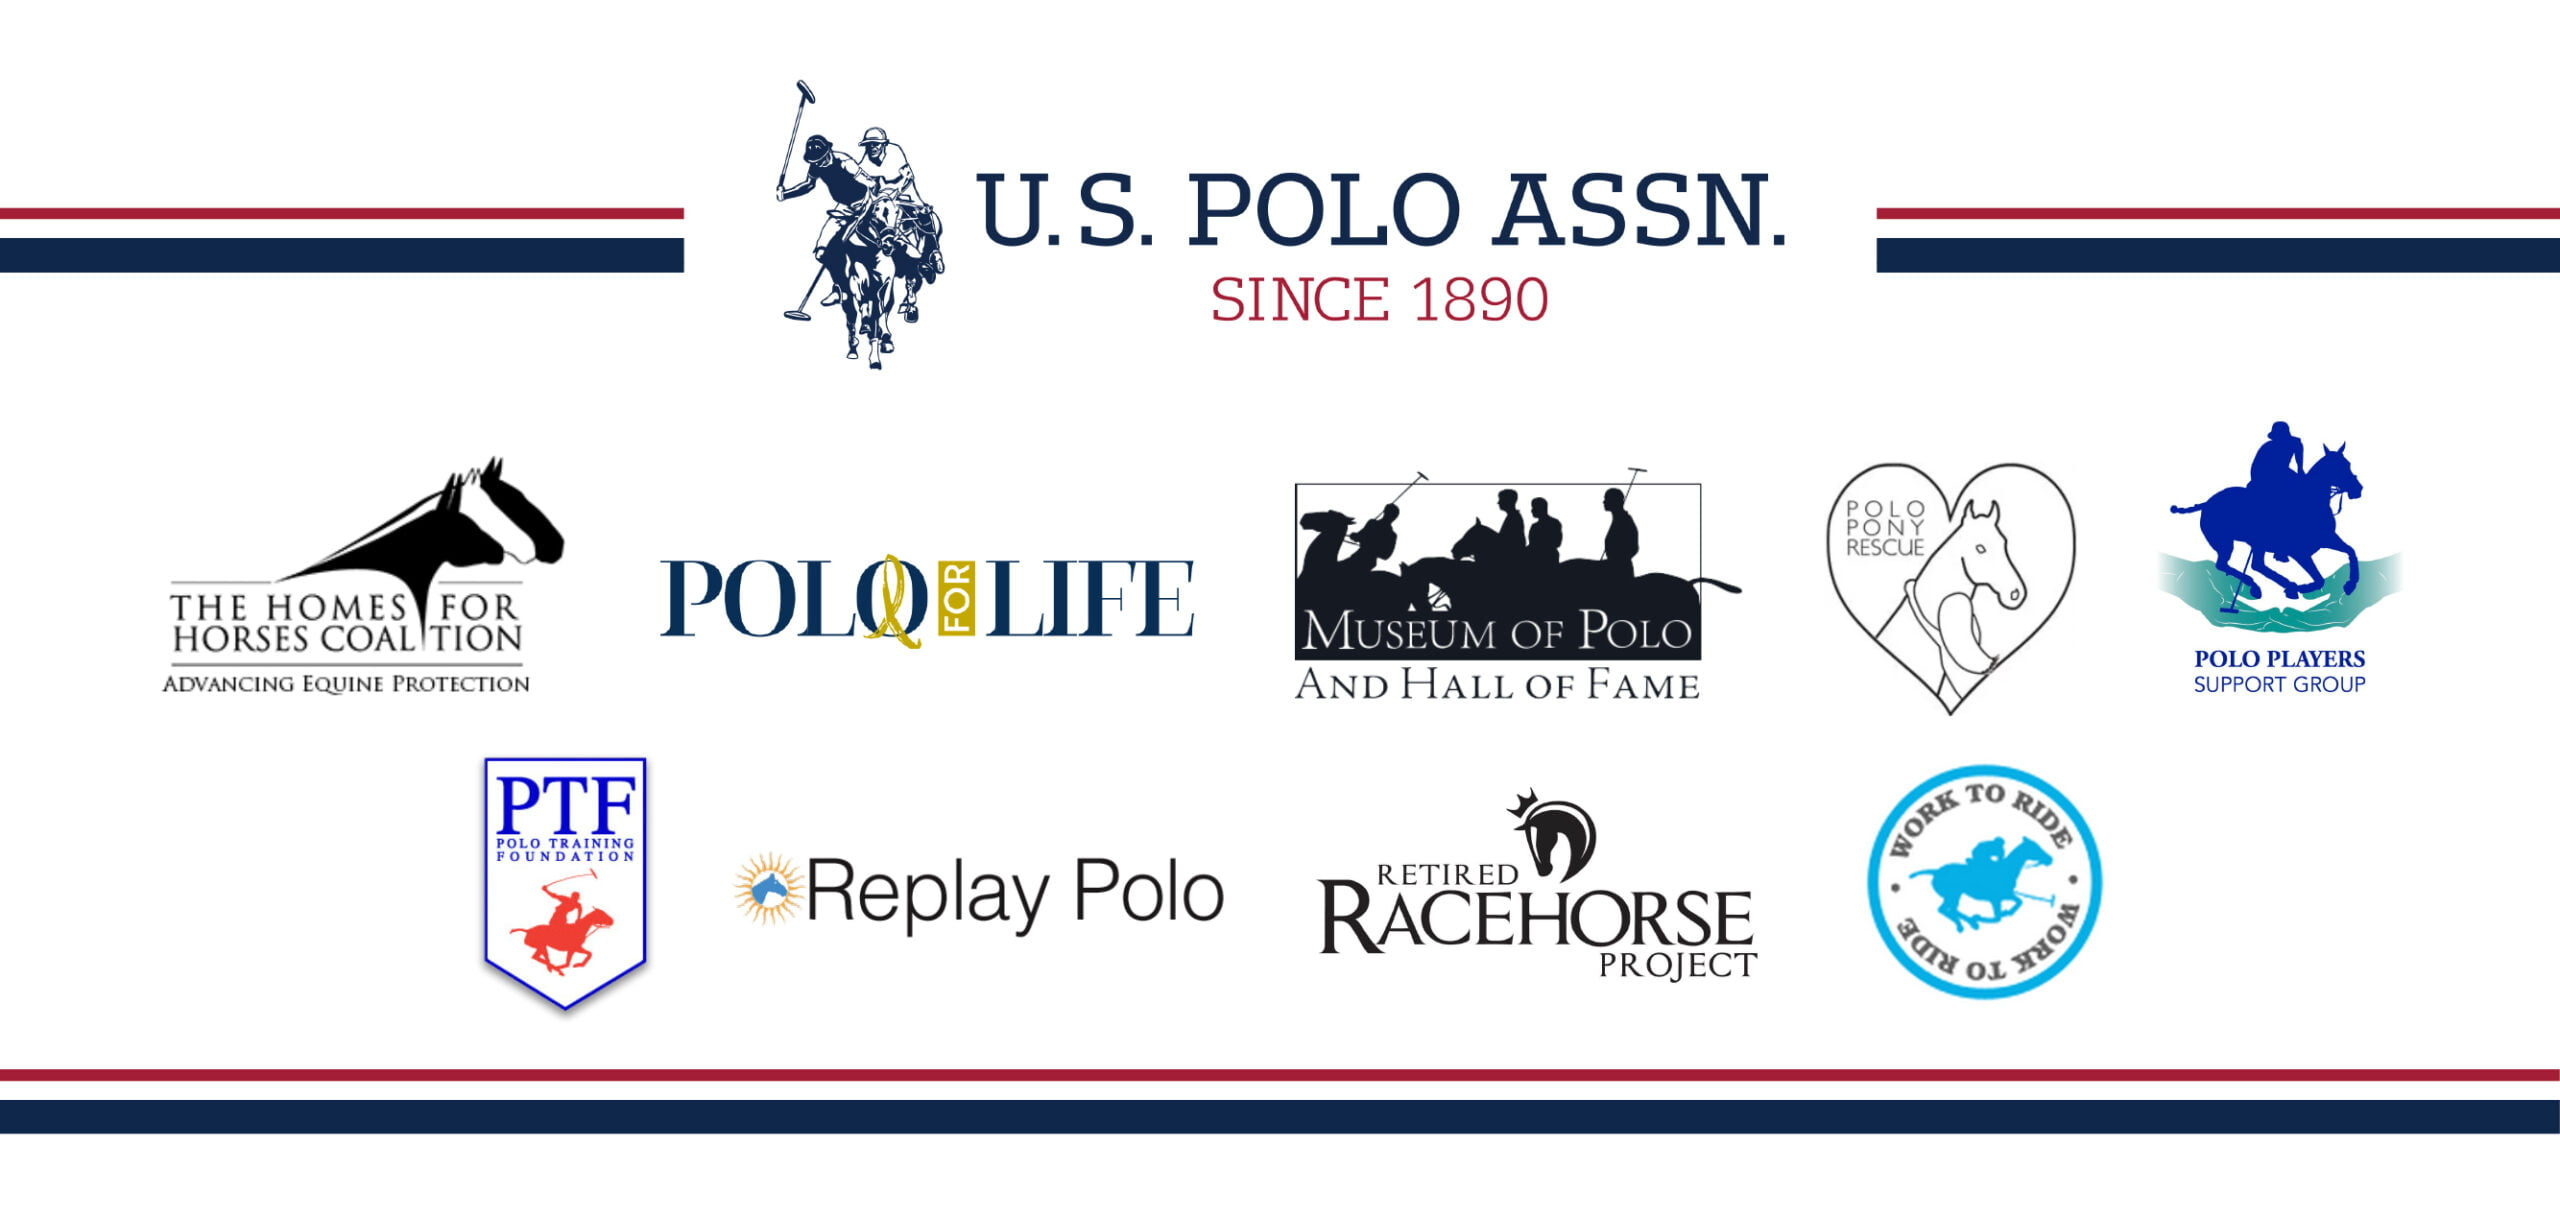 U.S. POLO ASSN. AND THE GAUNTLET OF POLO® TOURNAMENT SERIES PARTNER TO SUPPORT NOTABLE POLO CHARITIES